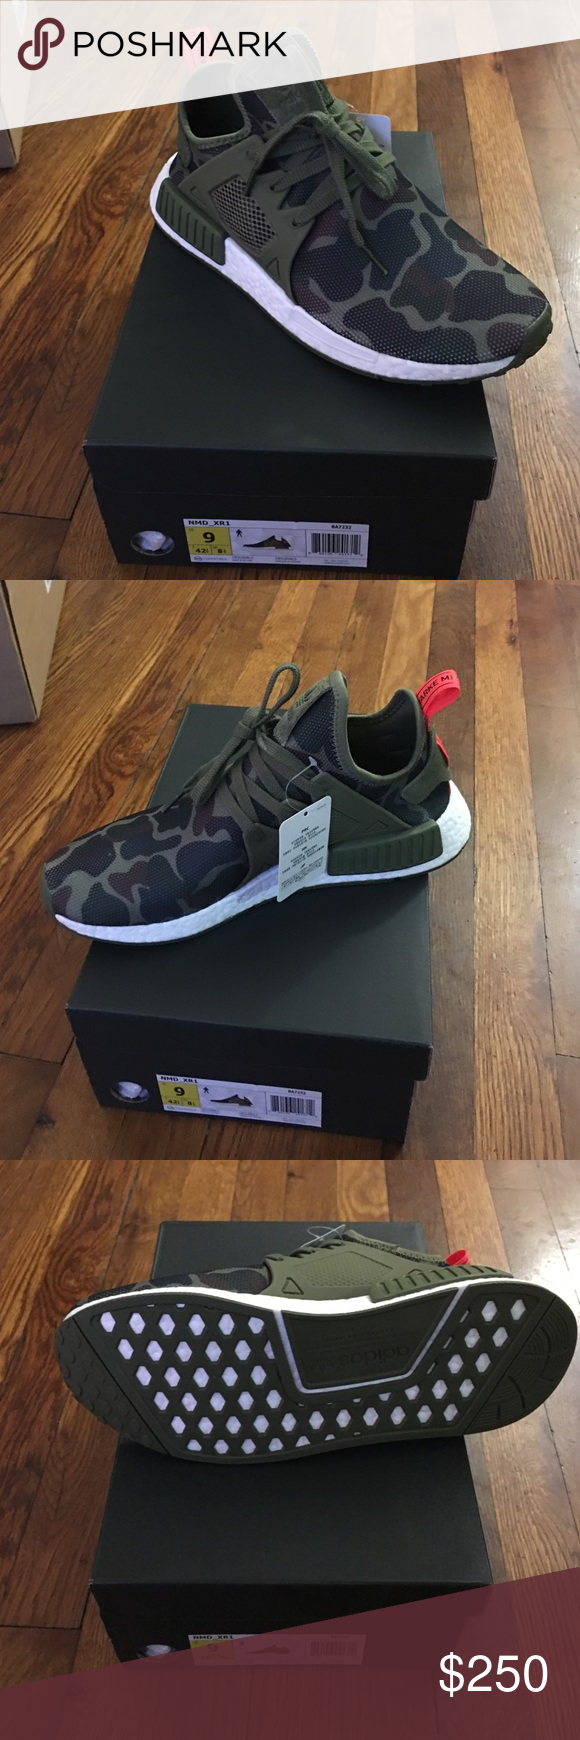 Adidas NMD XR1 Camo Adidas XR1 in Camo mens size 9. Adidas Shoes Athletic Shoes